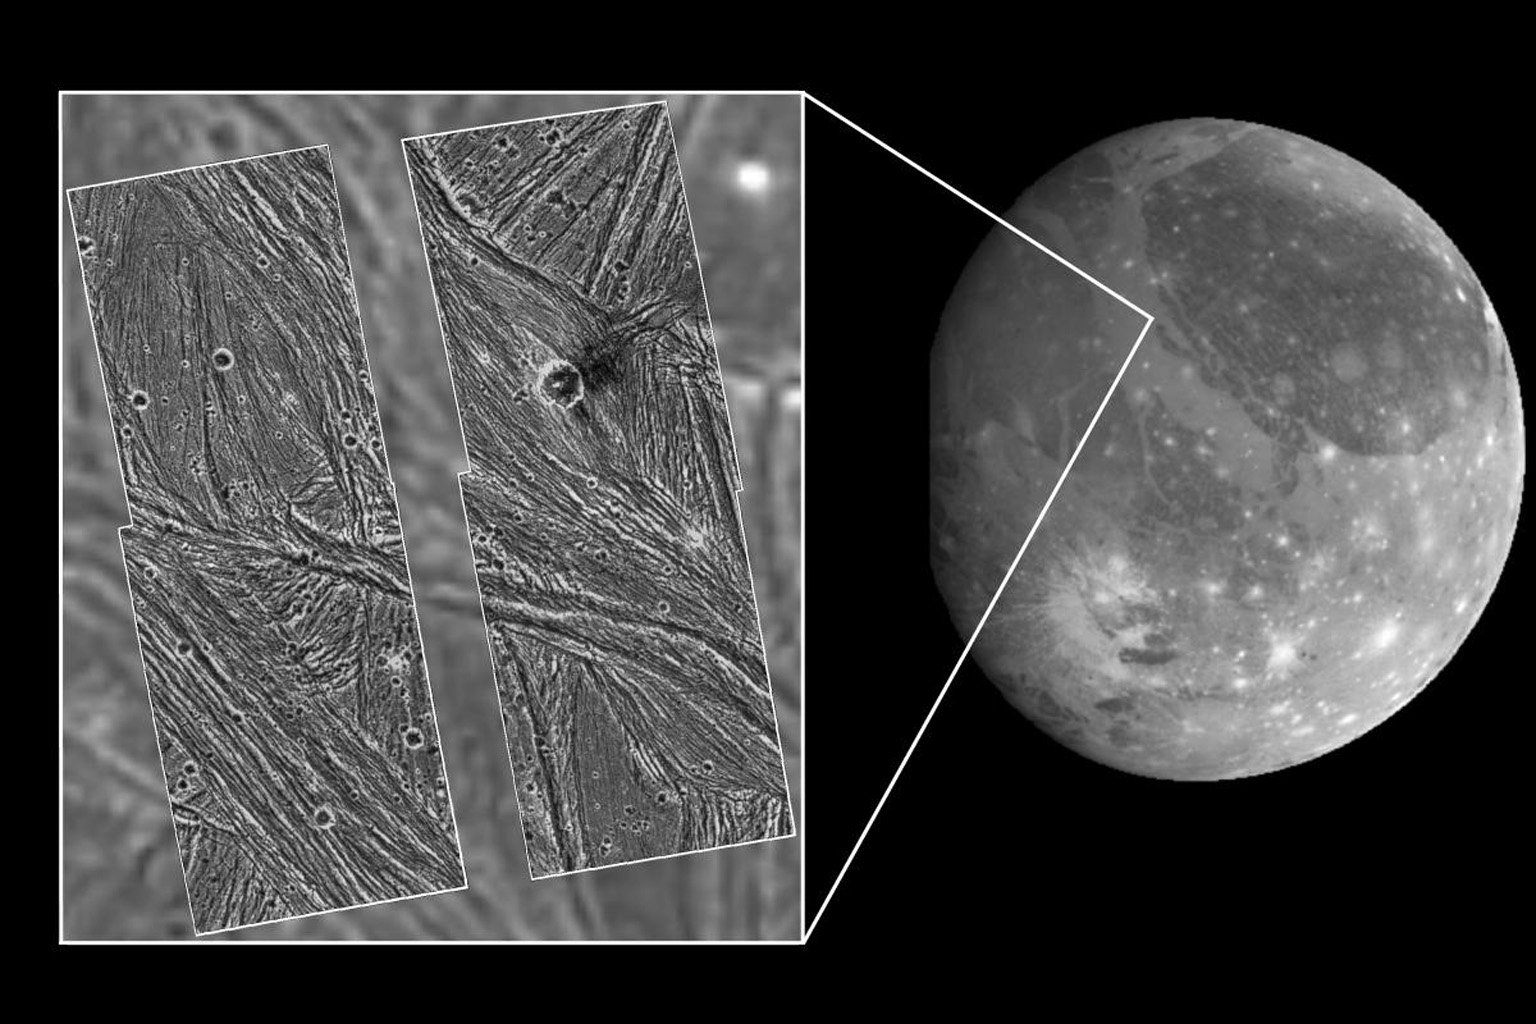 A mosaic of four NASA's Galileo spacecraft's high-resolution images of the Uruk Sulcus region of Jupiter's moon Ganymede (Latitude 11 N, Longitude: 170 W) is shown within the context of an image of the region taken by Voyager 2 in 1979.